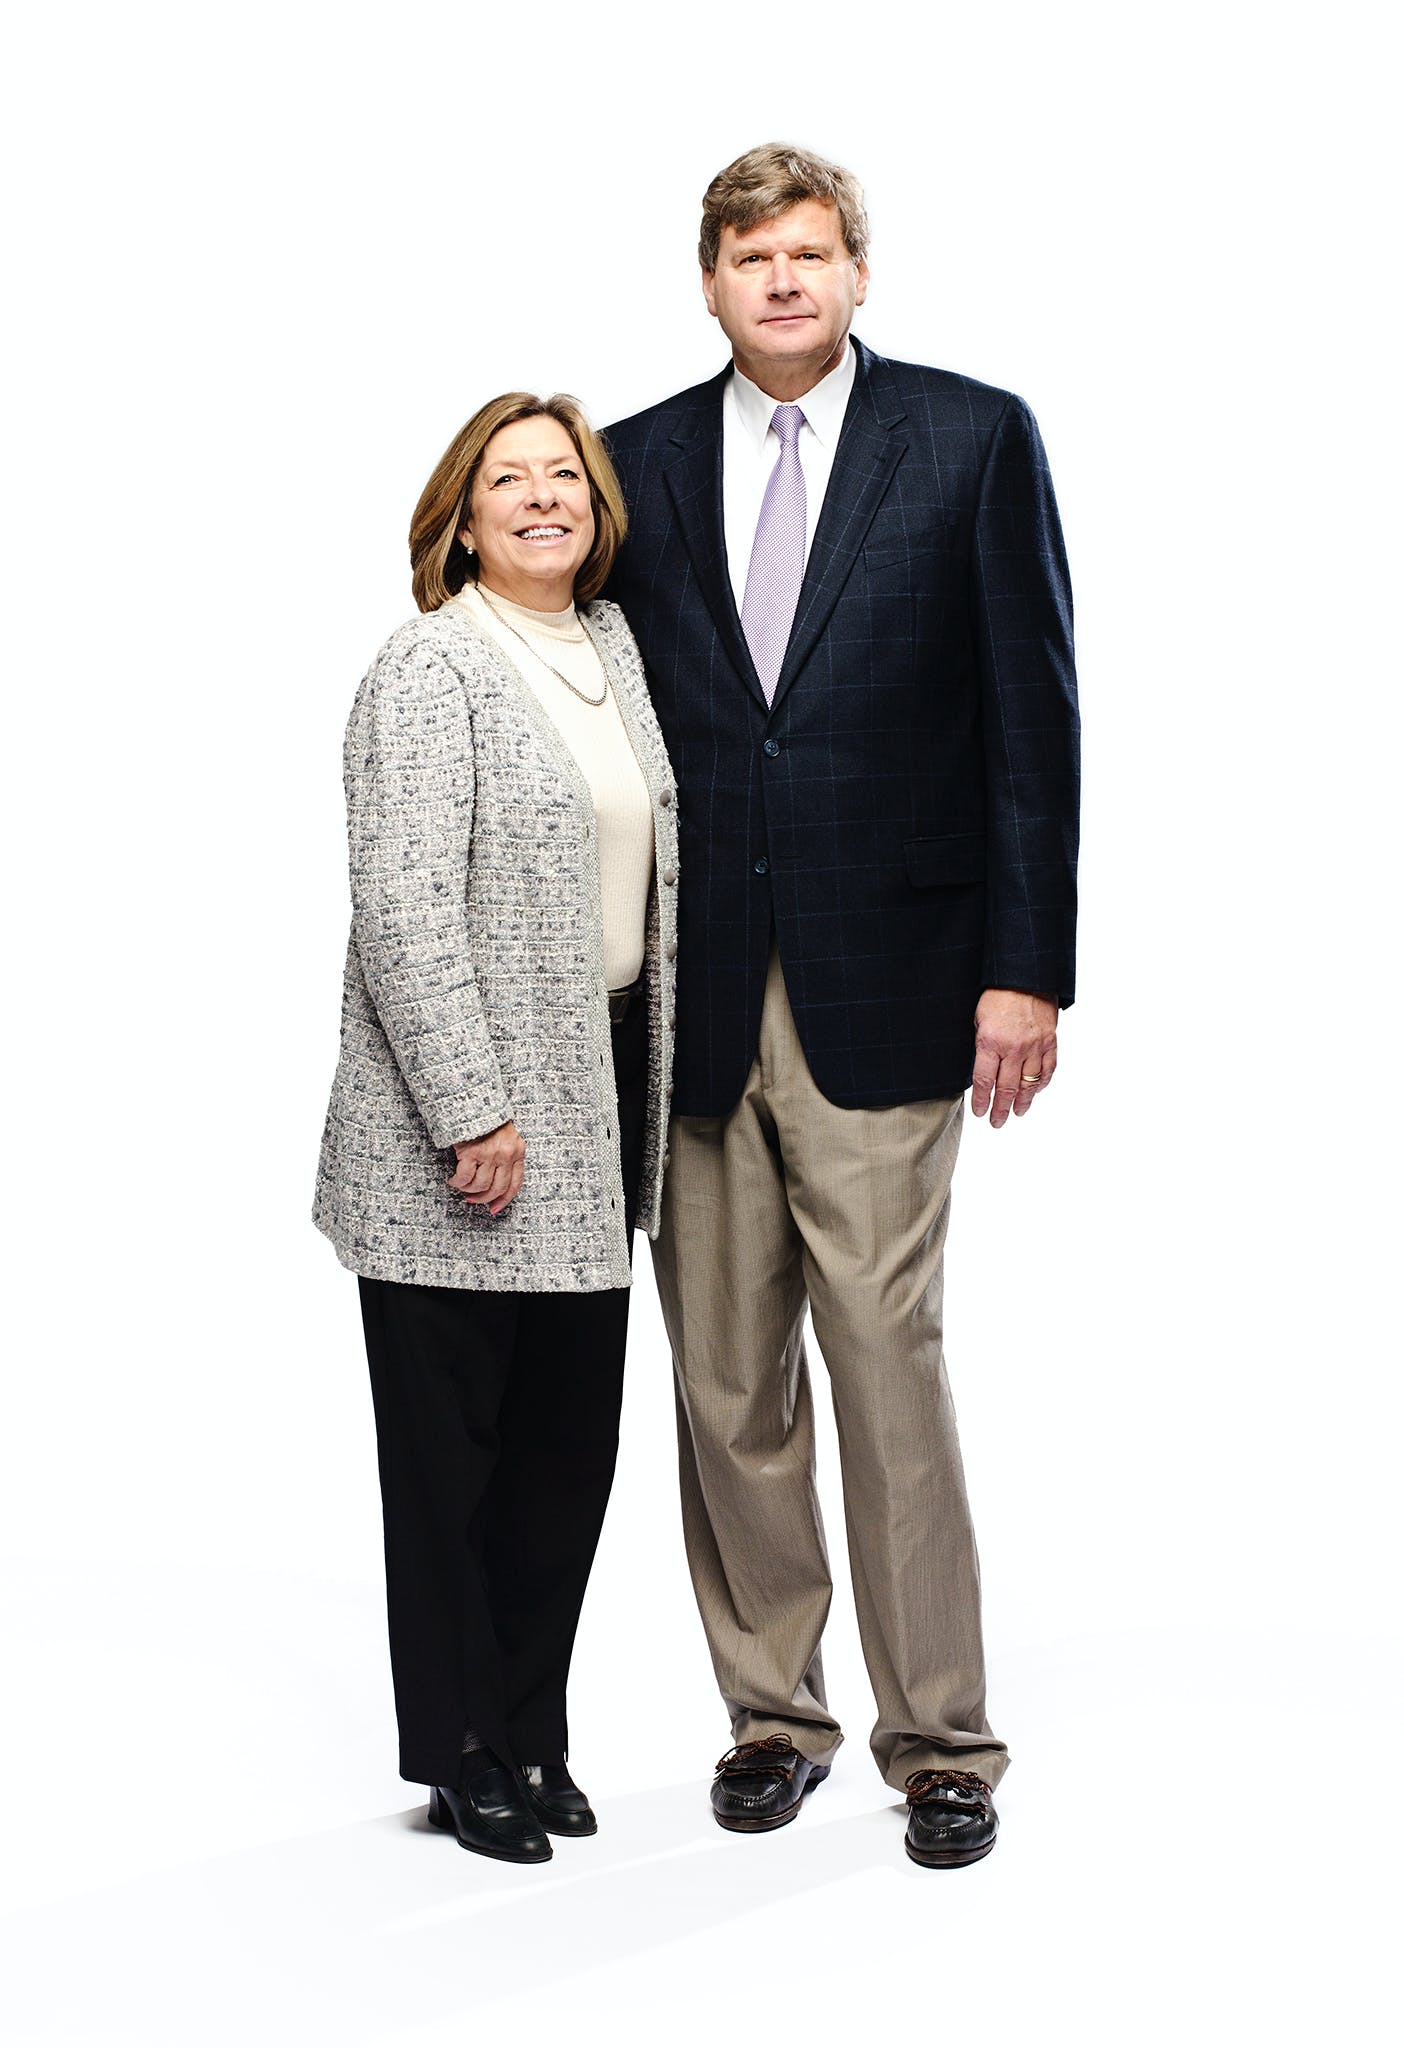 rs Anita and Robert Tabb for use in magazine, February 21, 2013.